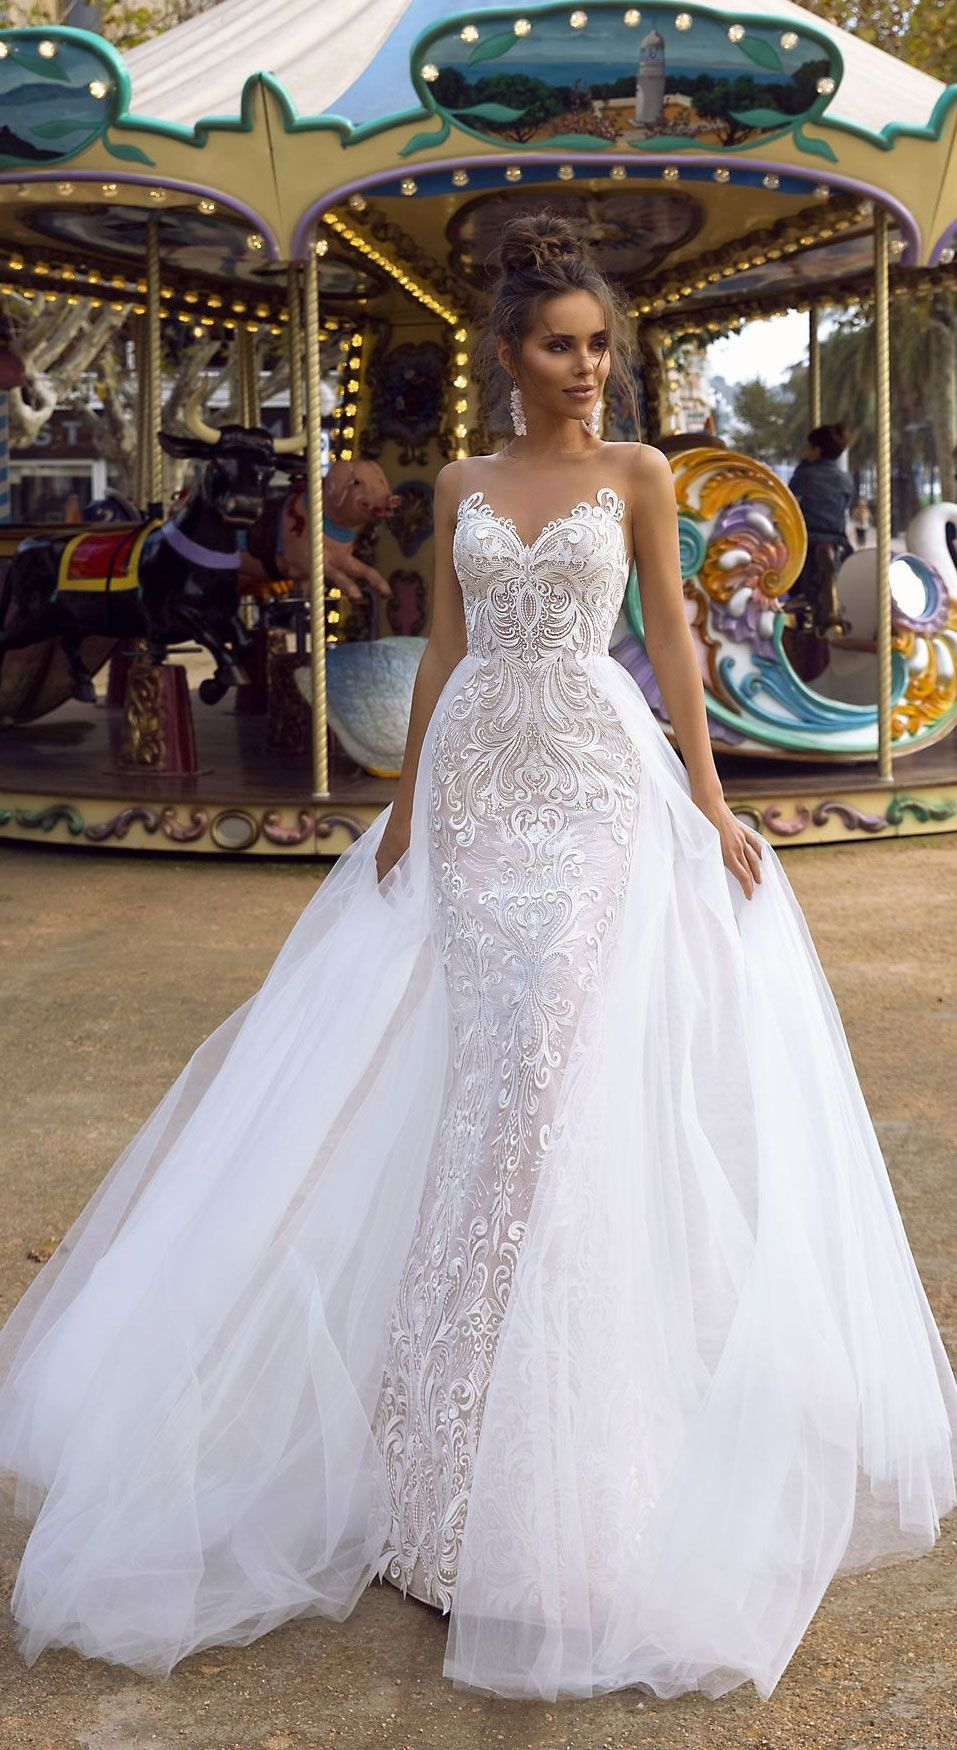 Beautiful wedding dress inspiration - Wedding Dresses, mermaid wedding gown,a-line wedding dress #bridalgown #weddinggown #weddingdress #bridedress